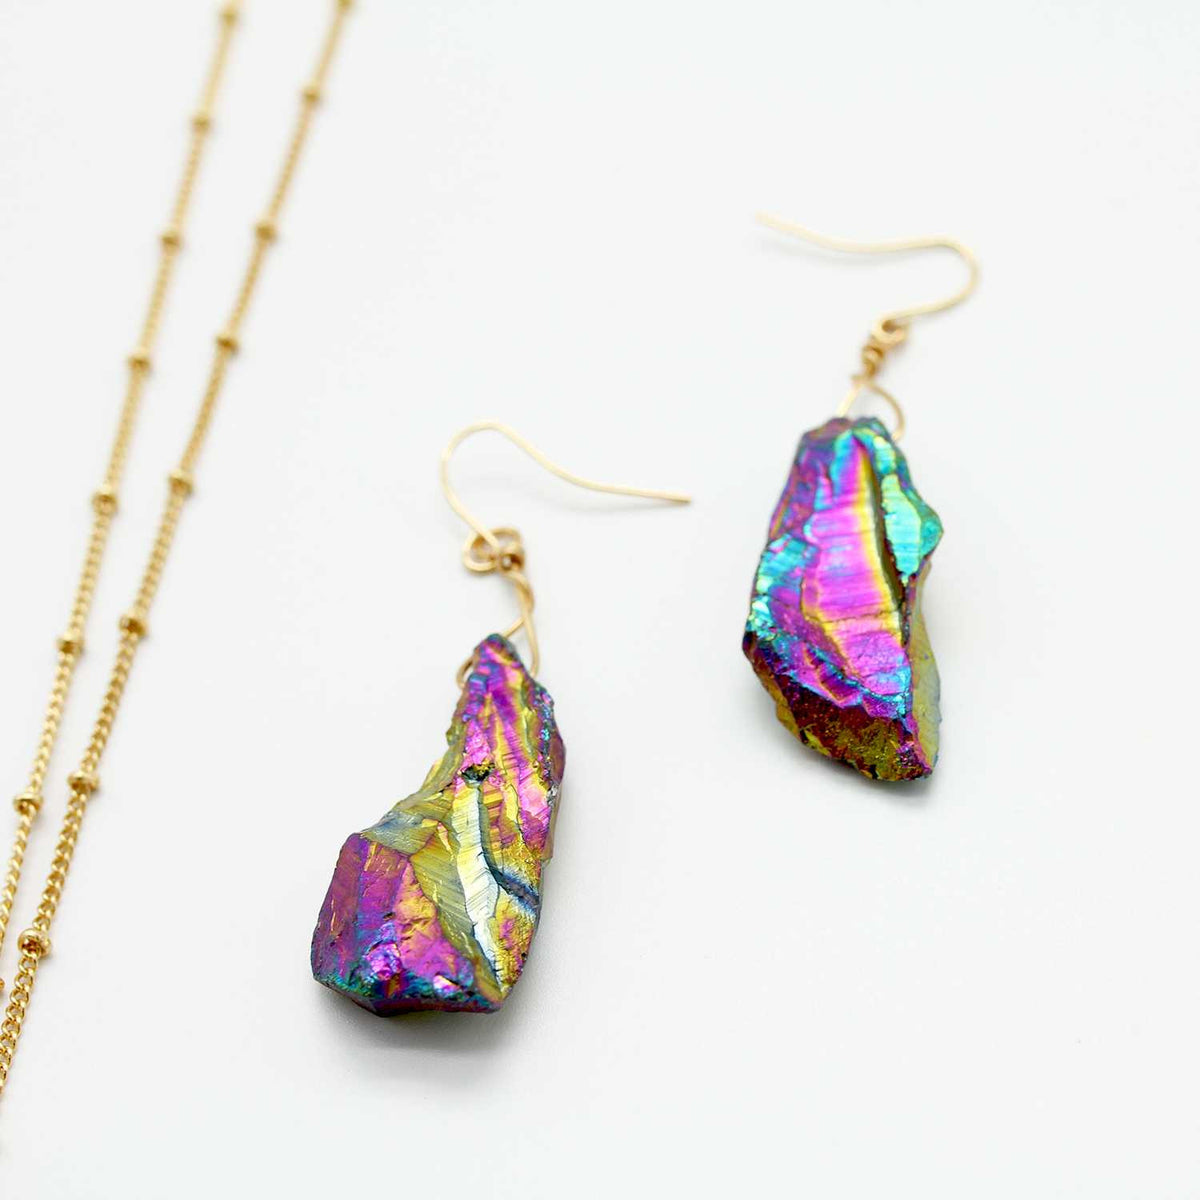 Multi Color Gild Irregular Natural Stone Jewelry Set Pendant & Necklace - worthtryit.com